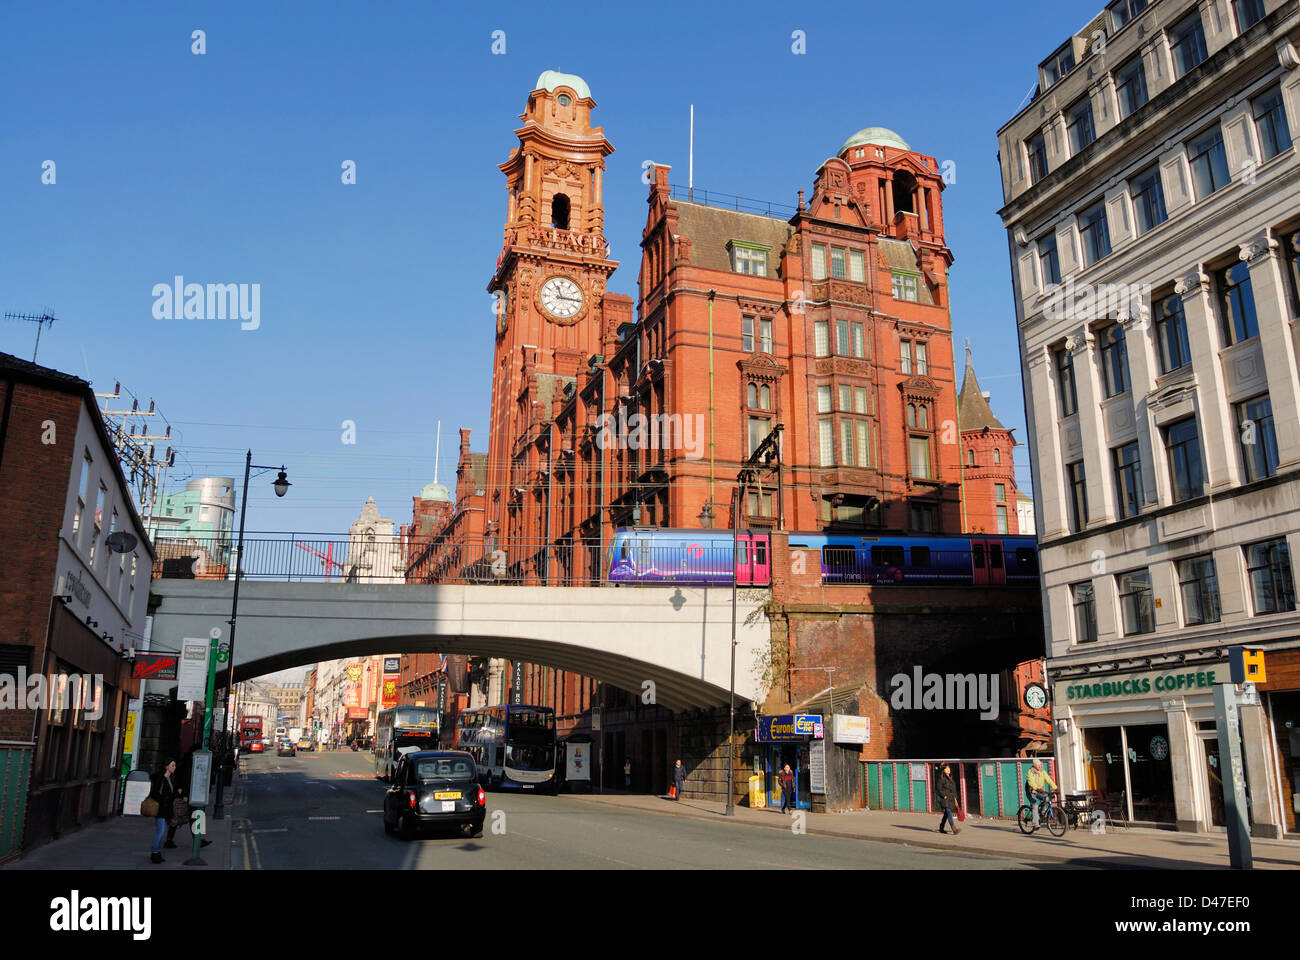 Oxford Road in Manchester showing the Refuge building and railway bridge at Oxford Road railway station. - Stock Image